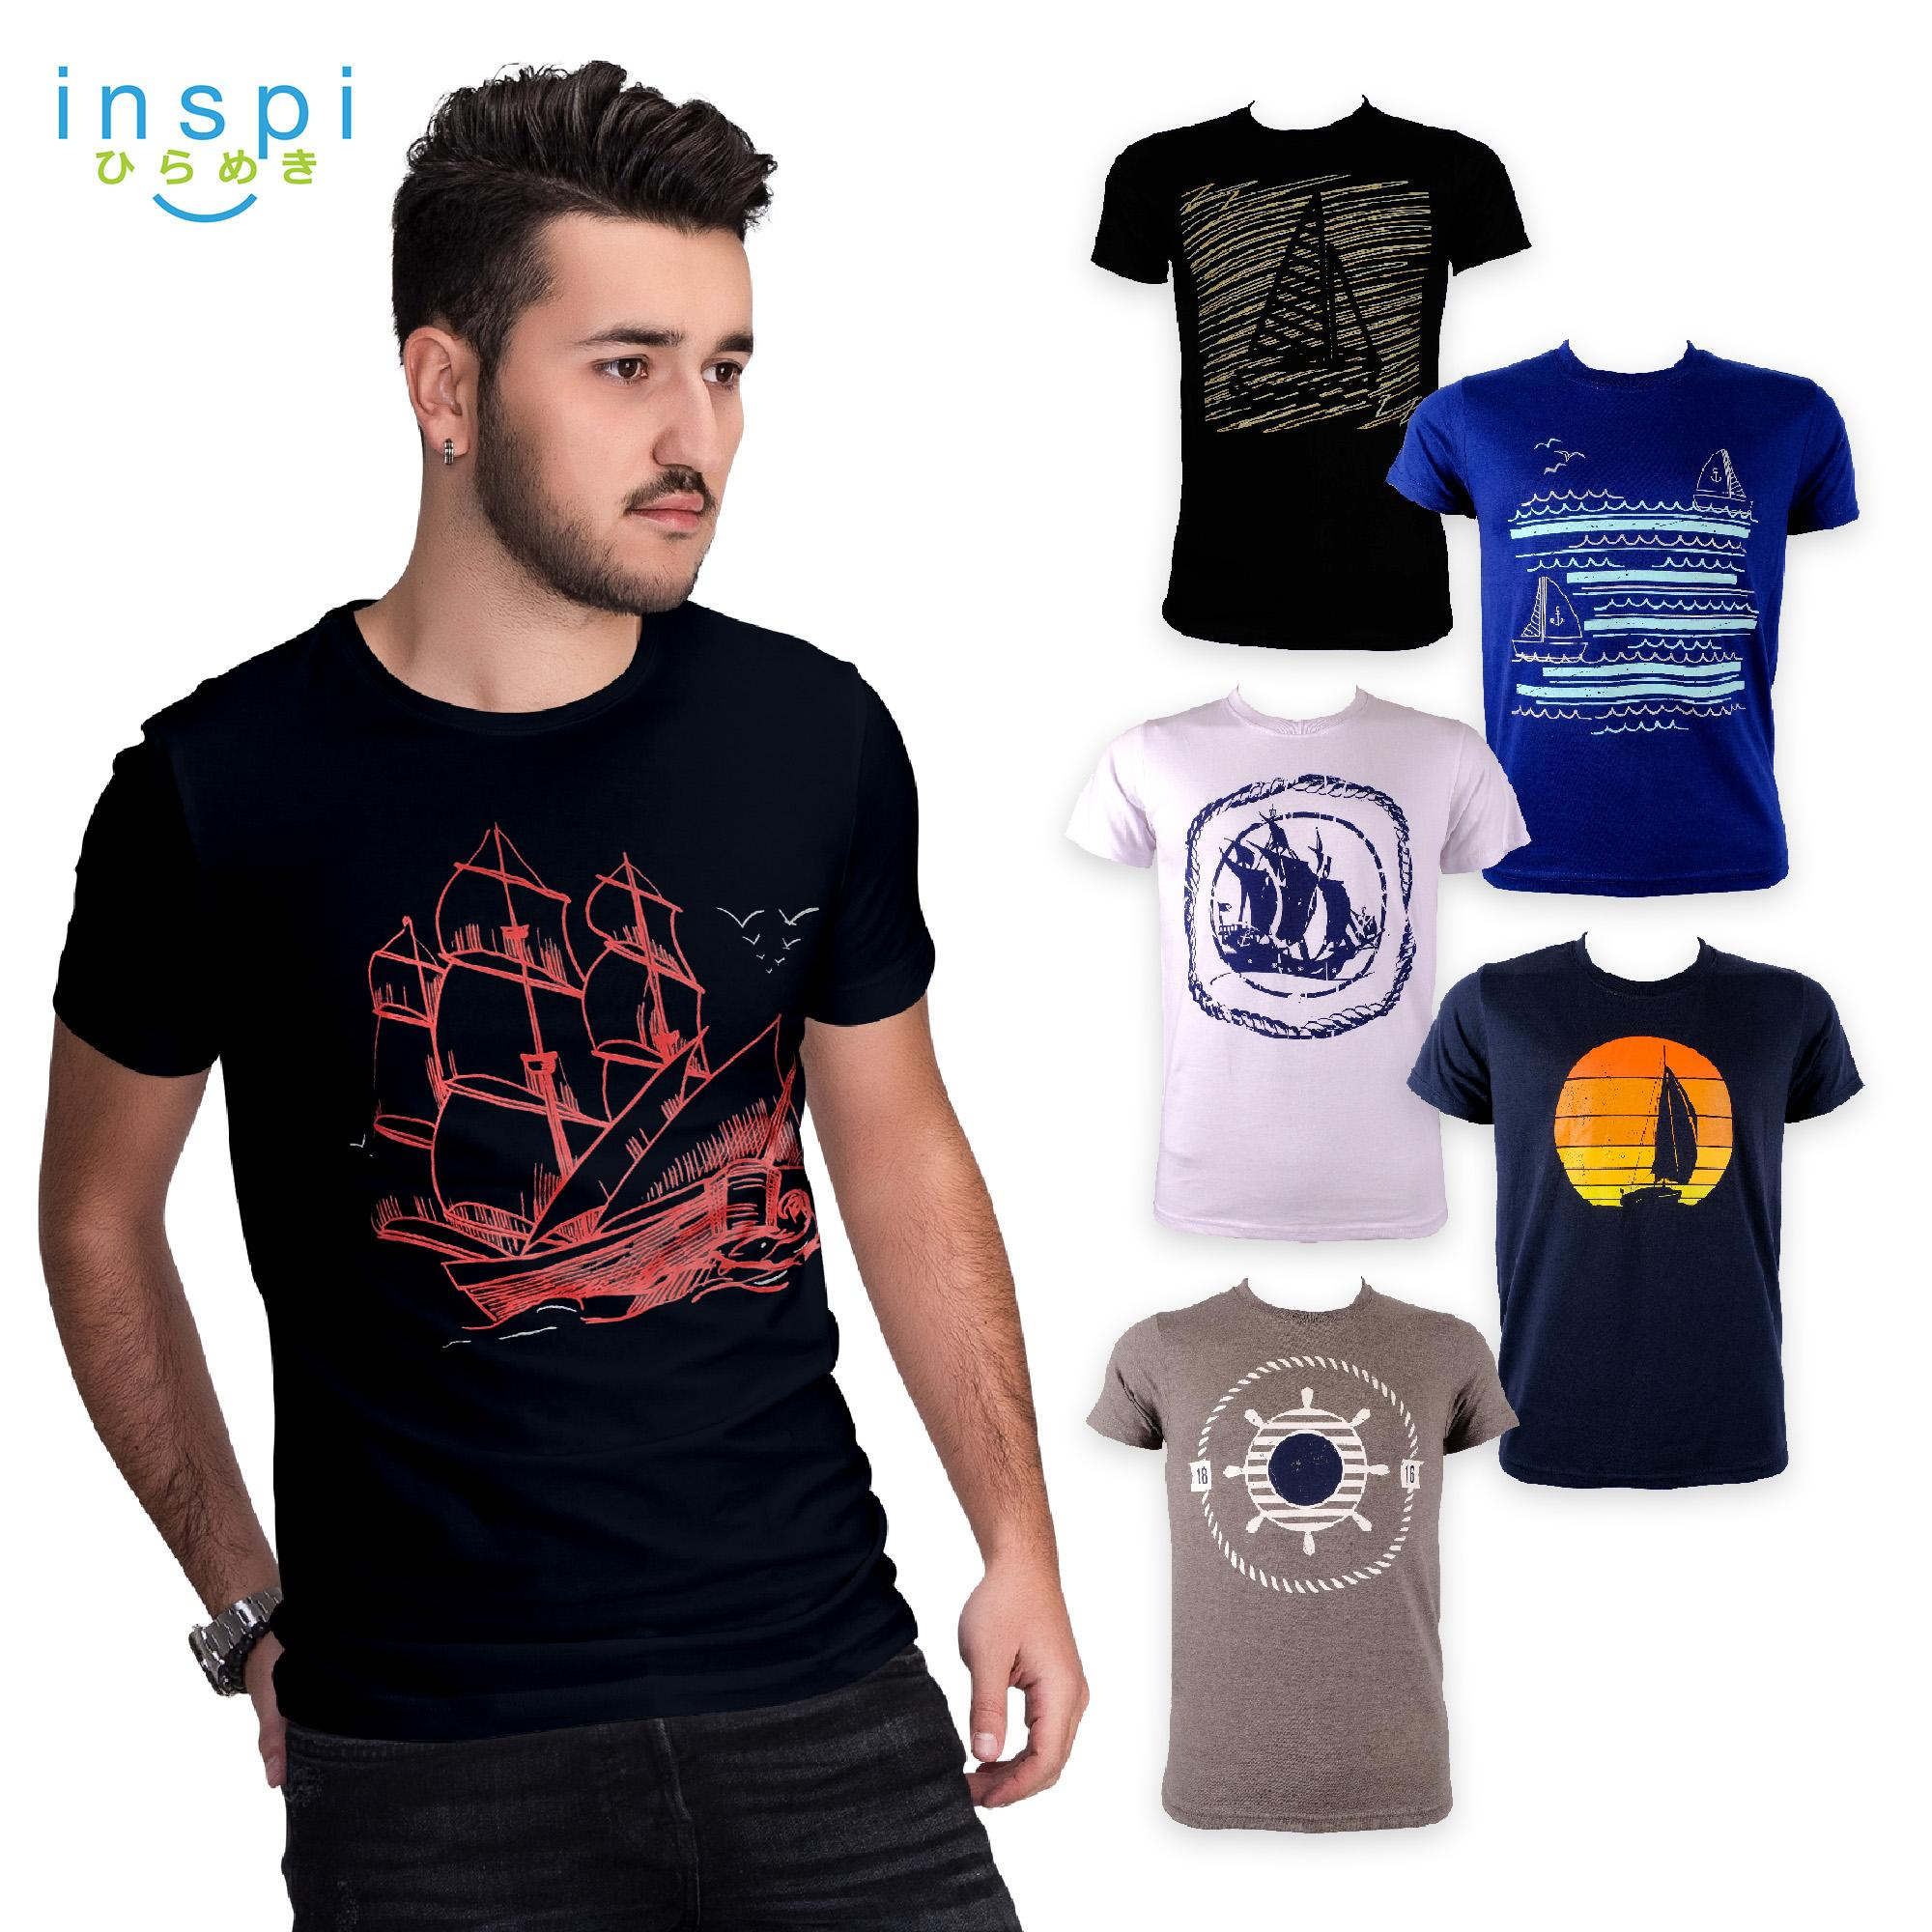 c57b79b55753 INSPI Tees Sailing Collection tshirt printed graphic tee Mens t shirt shirts  for men tshirts sale